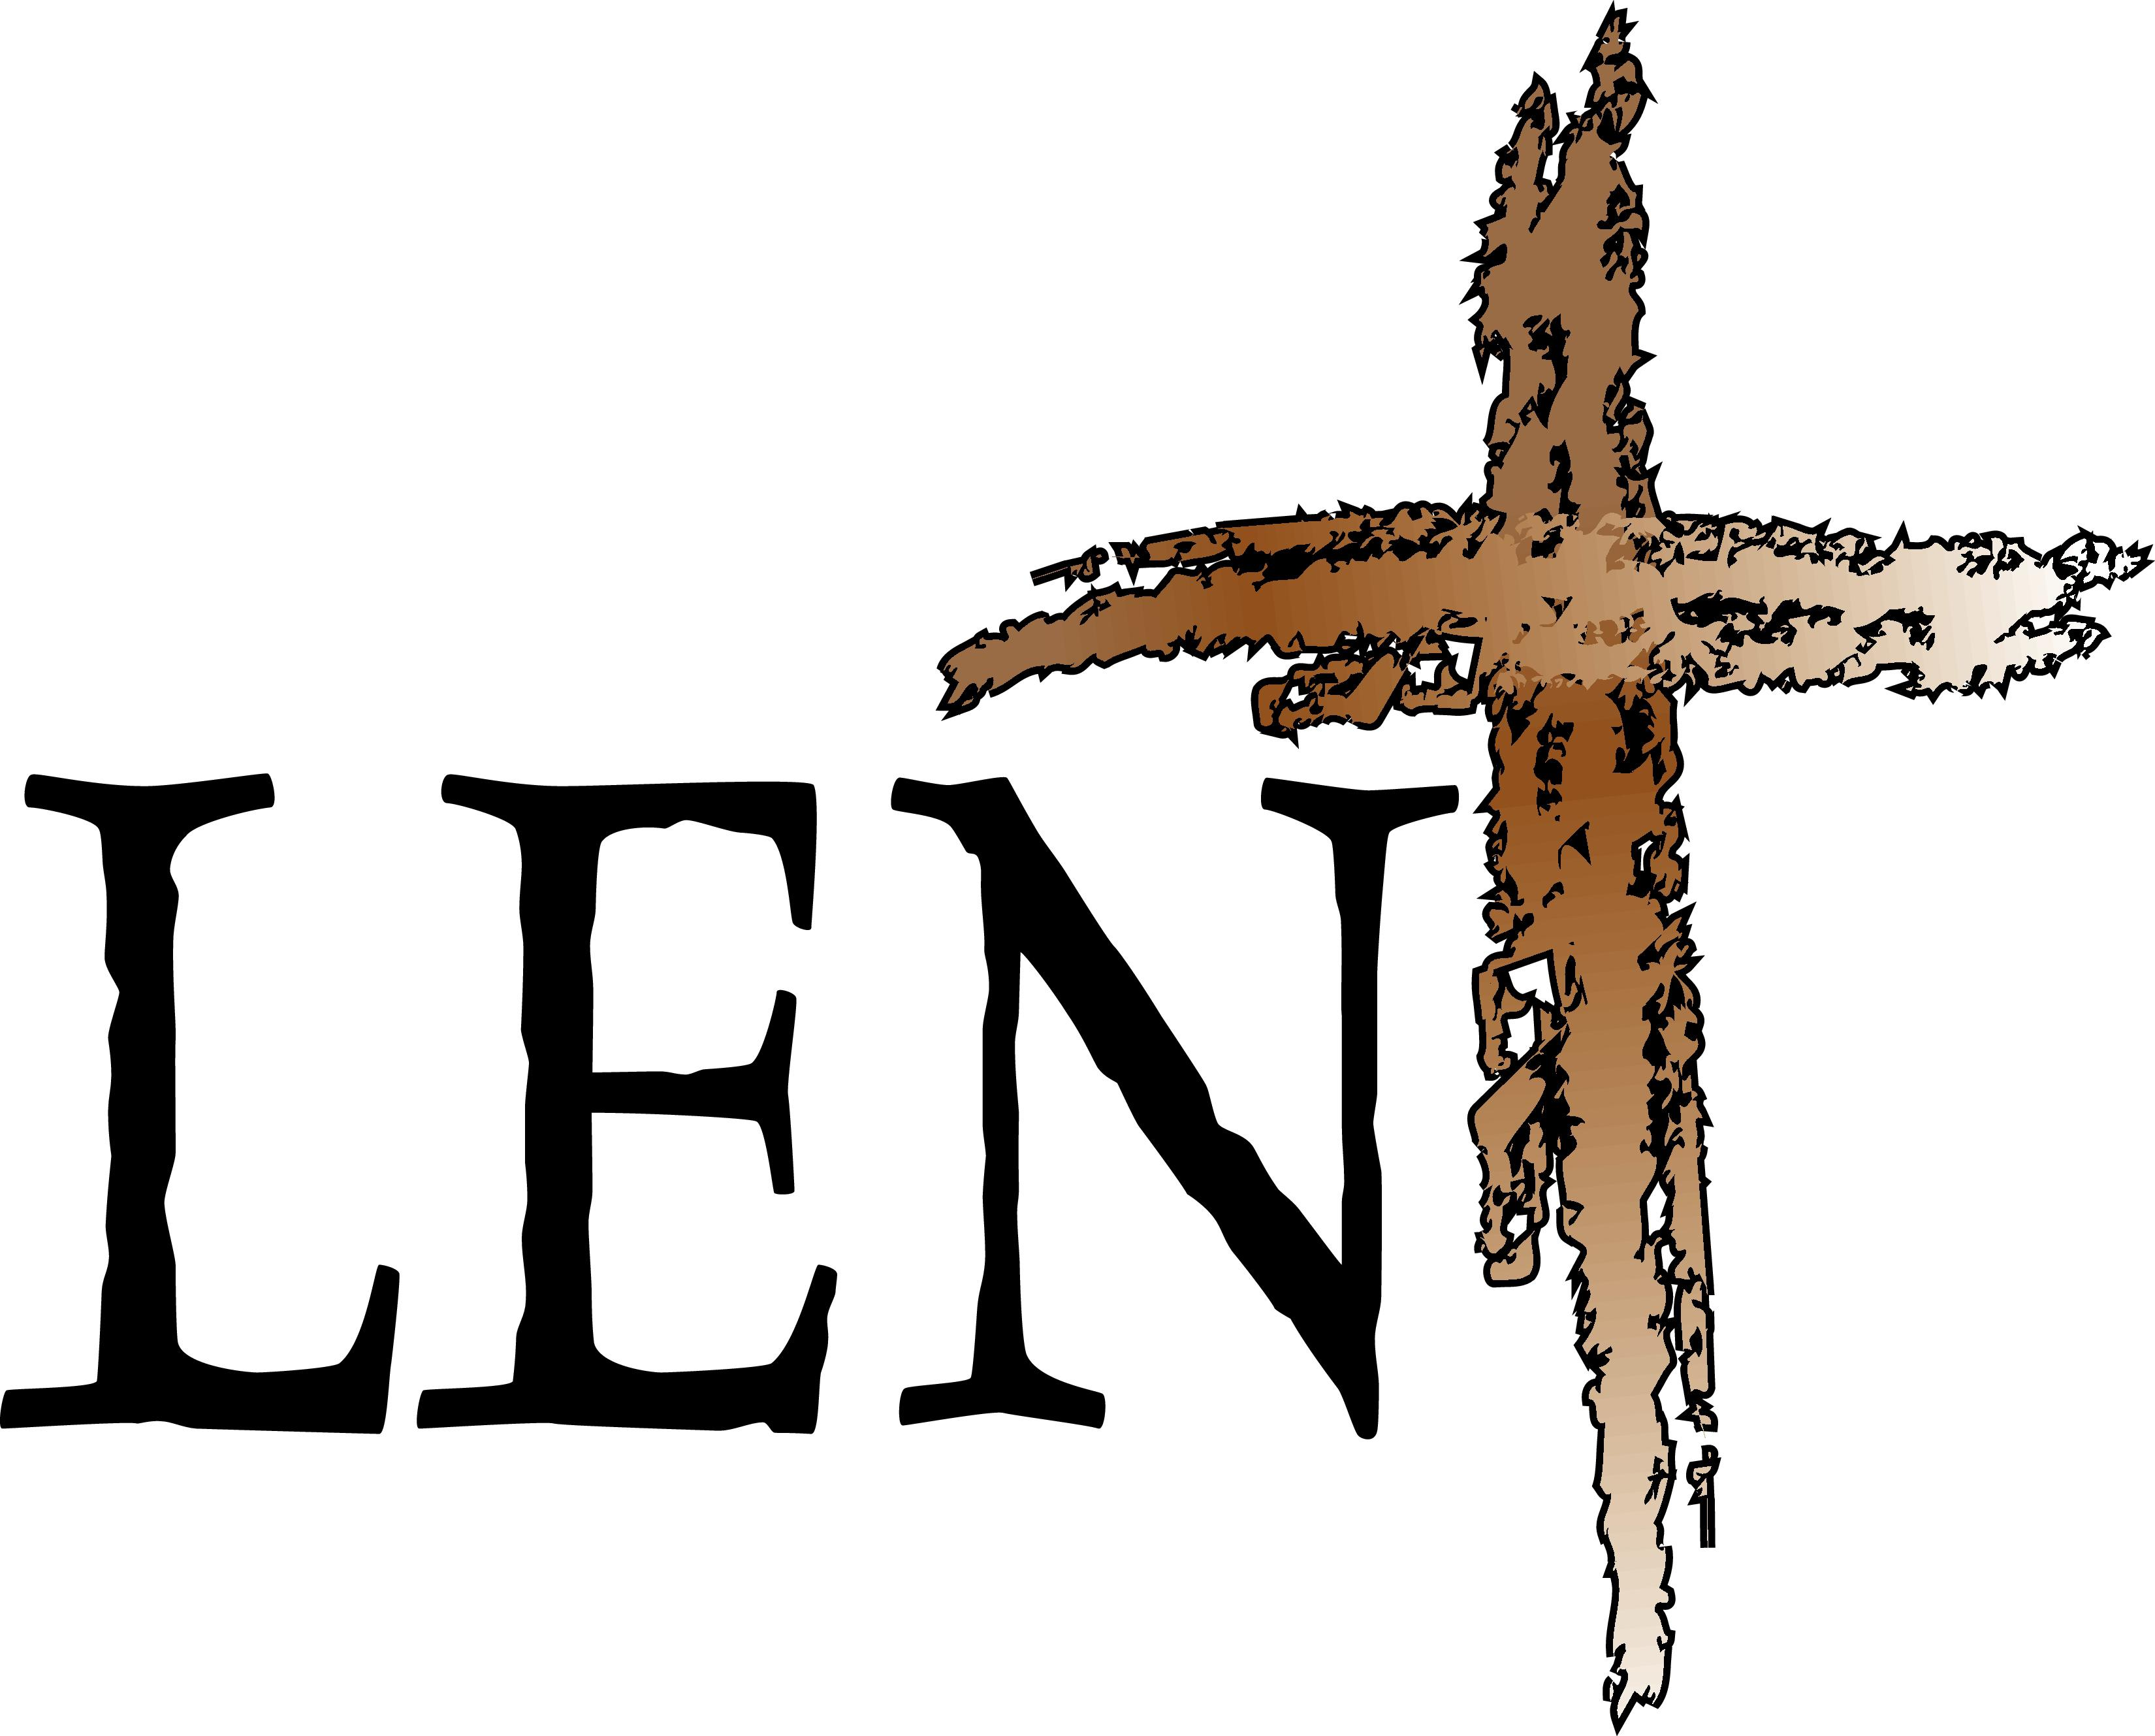 Posted by chalcedon451 in Blogging , Lent